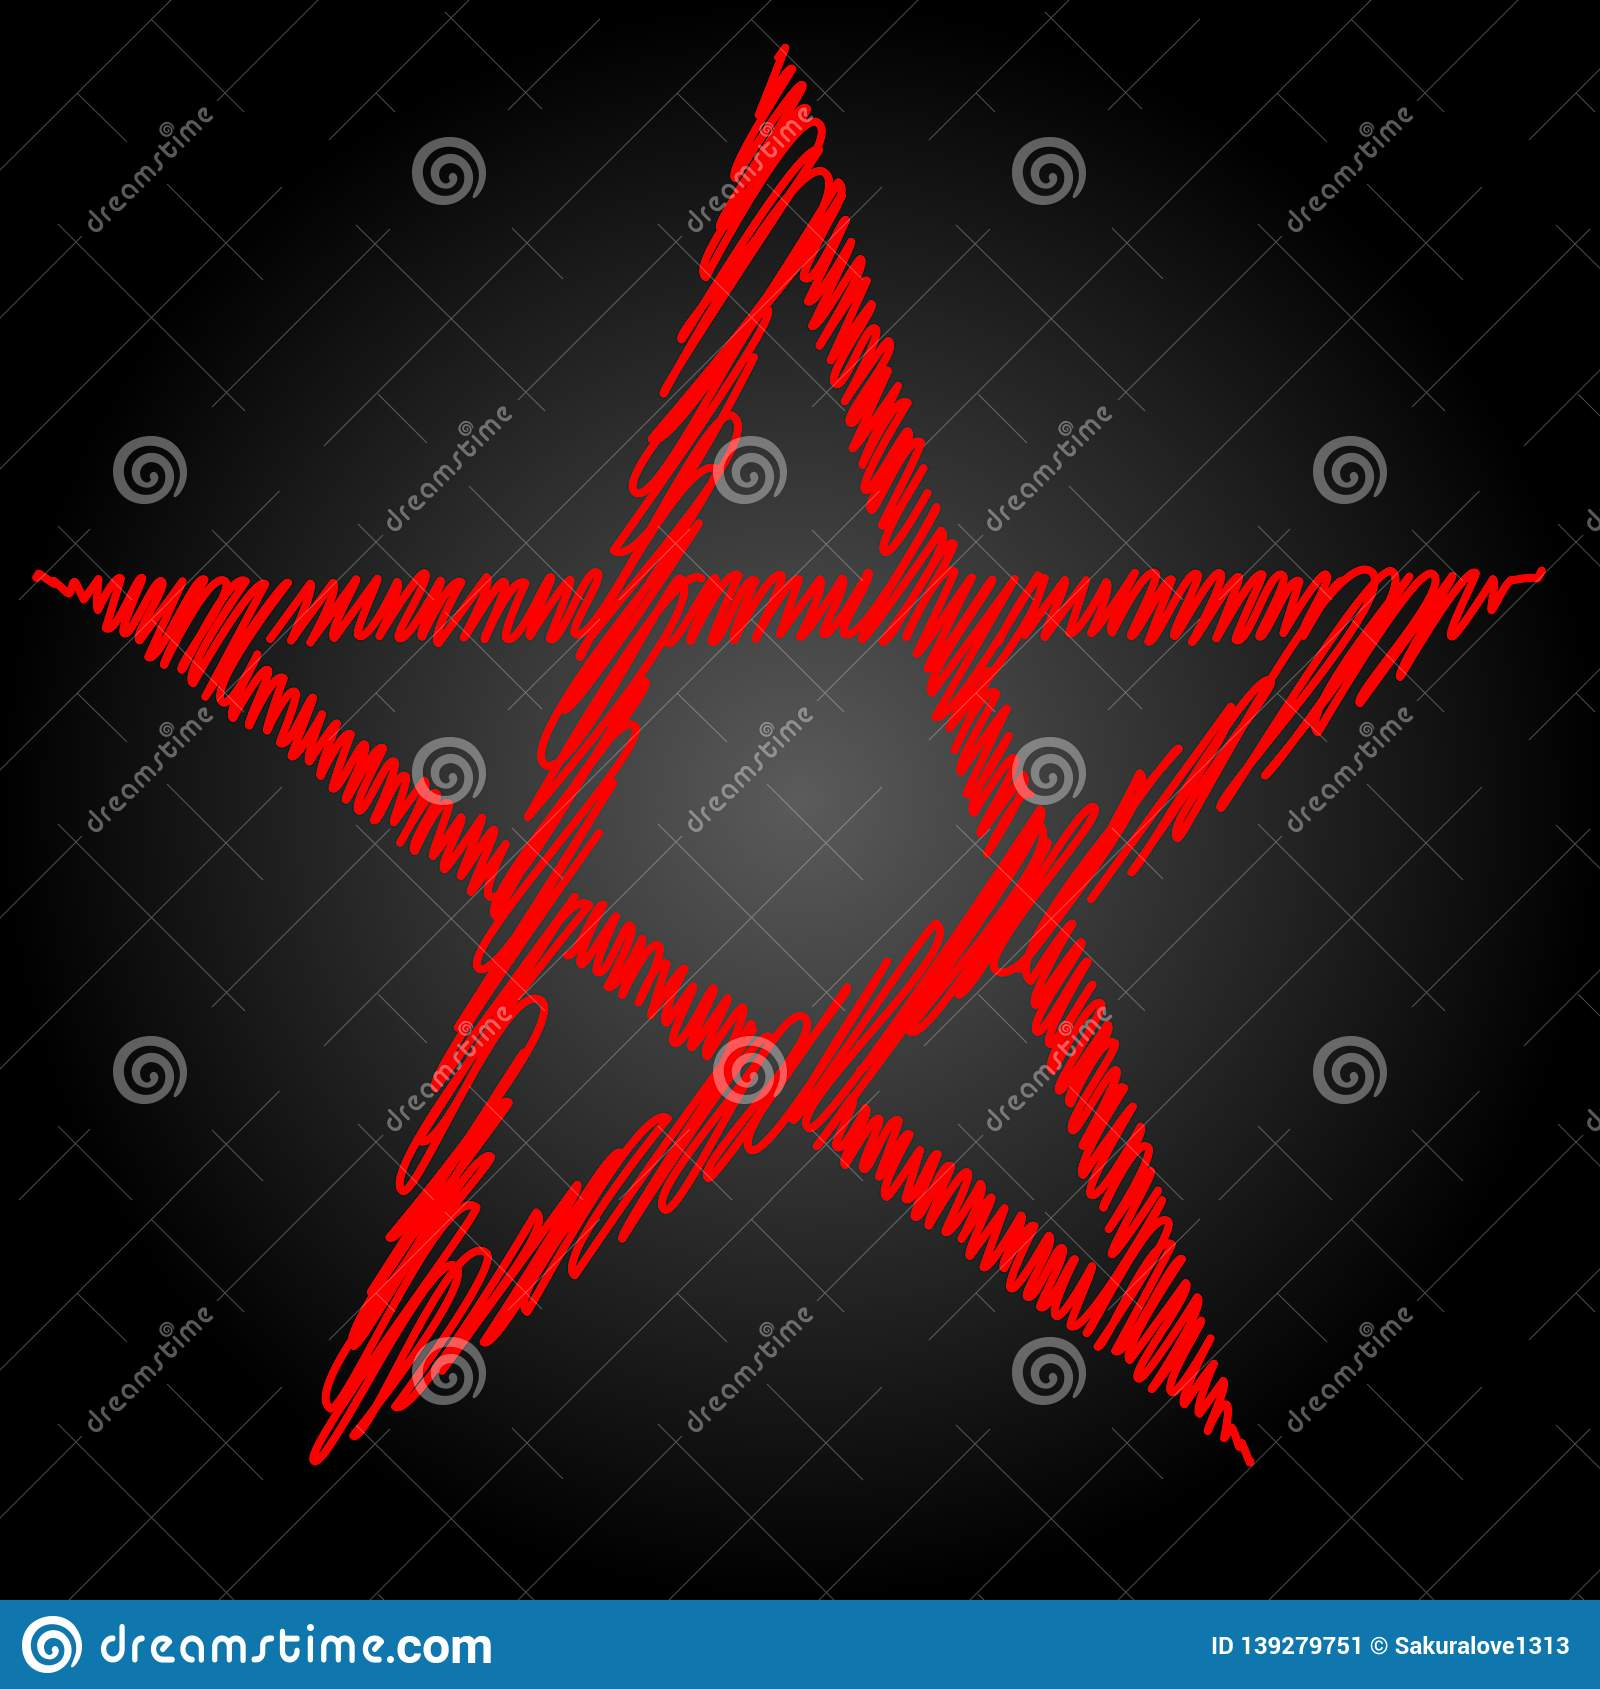 Pentagram Or Pentalpha Or Pentangle  Dot Work Ancient Pagan